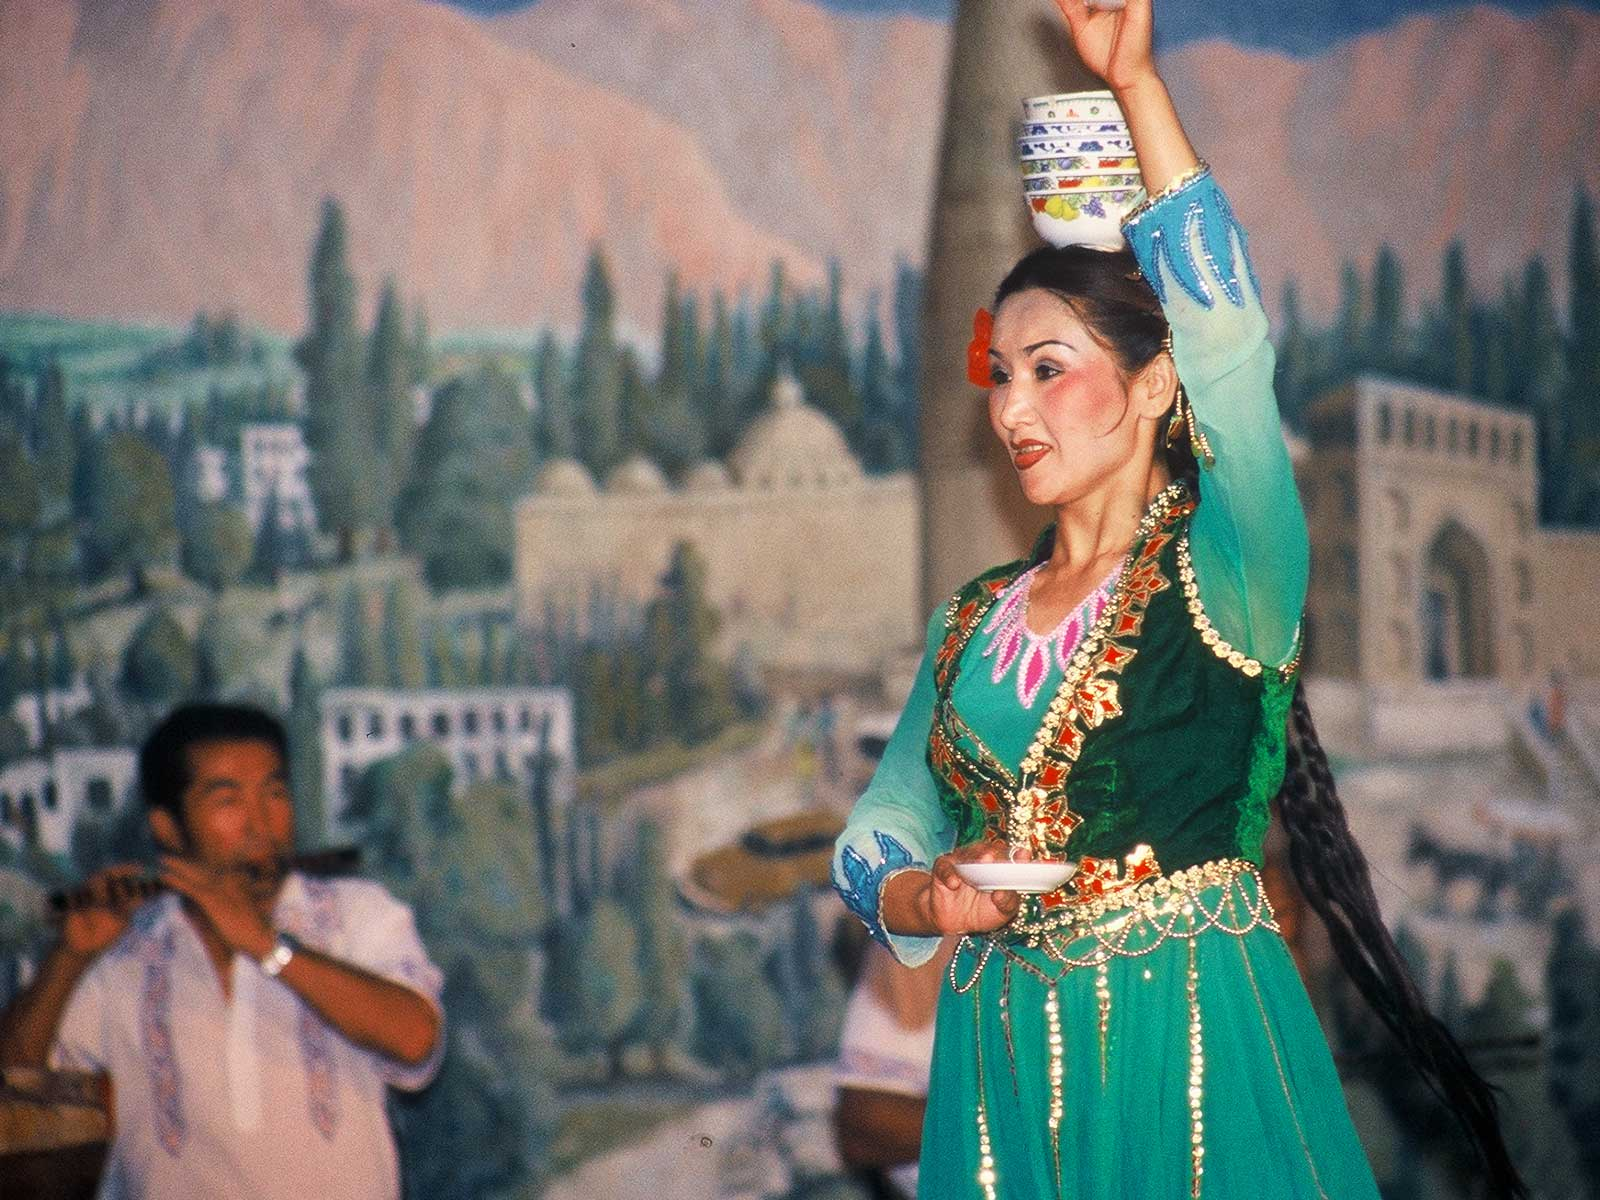 Uyghur dancer - Turpan -Xinjiang - Silk Road Photo Journal - Steven Andrew Martin - 2001